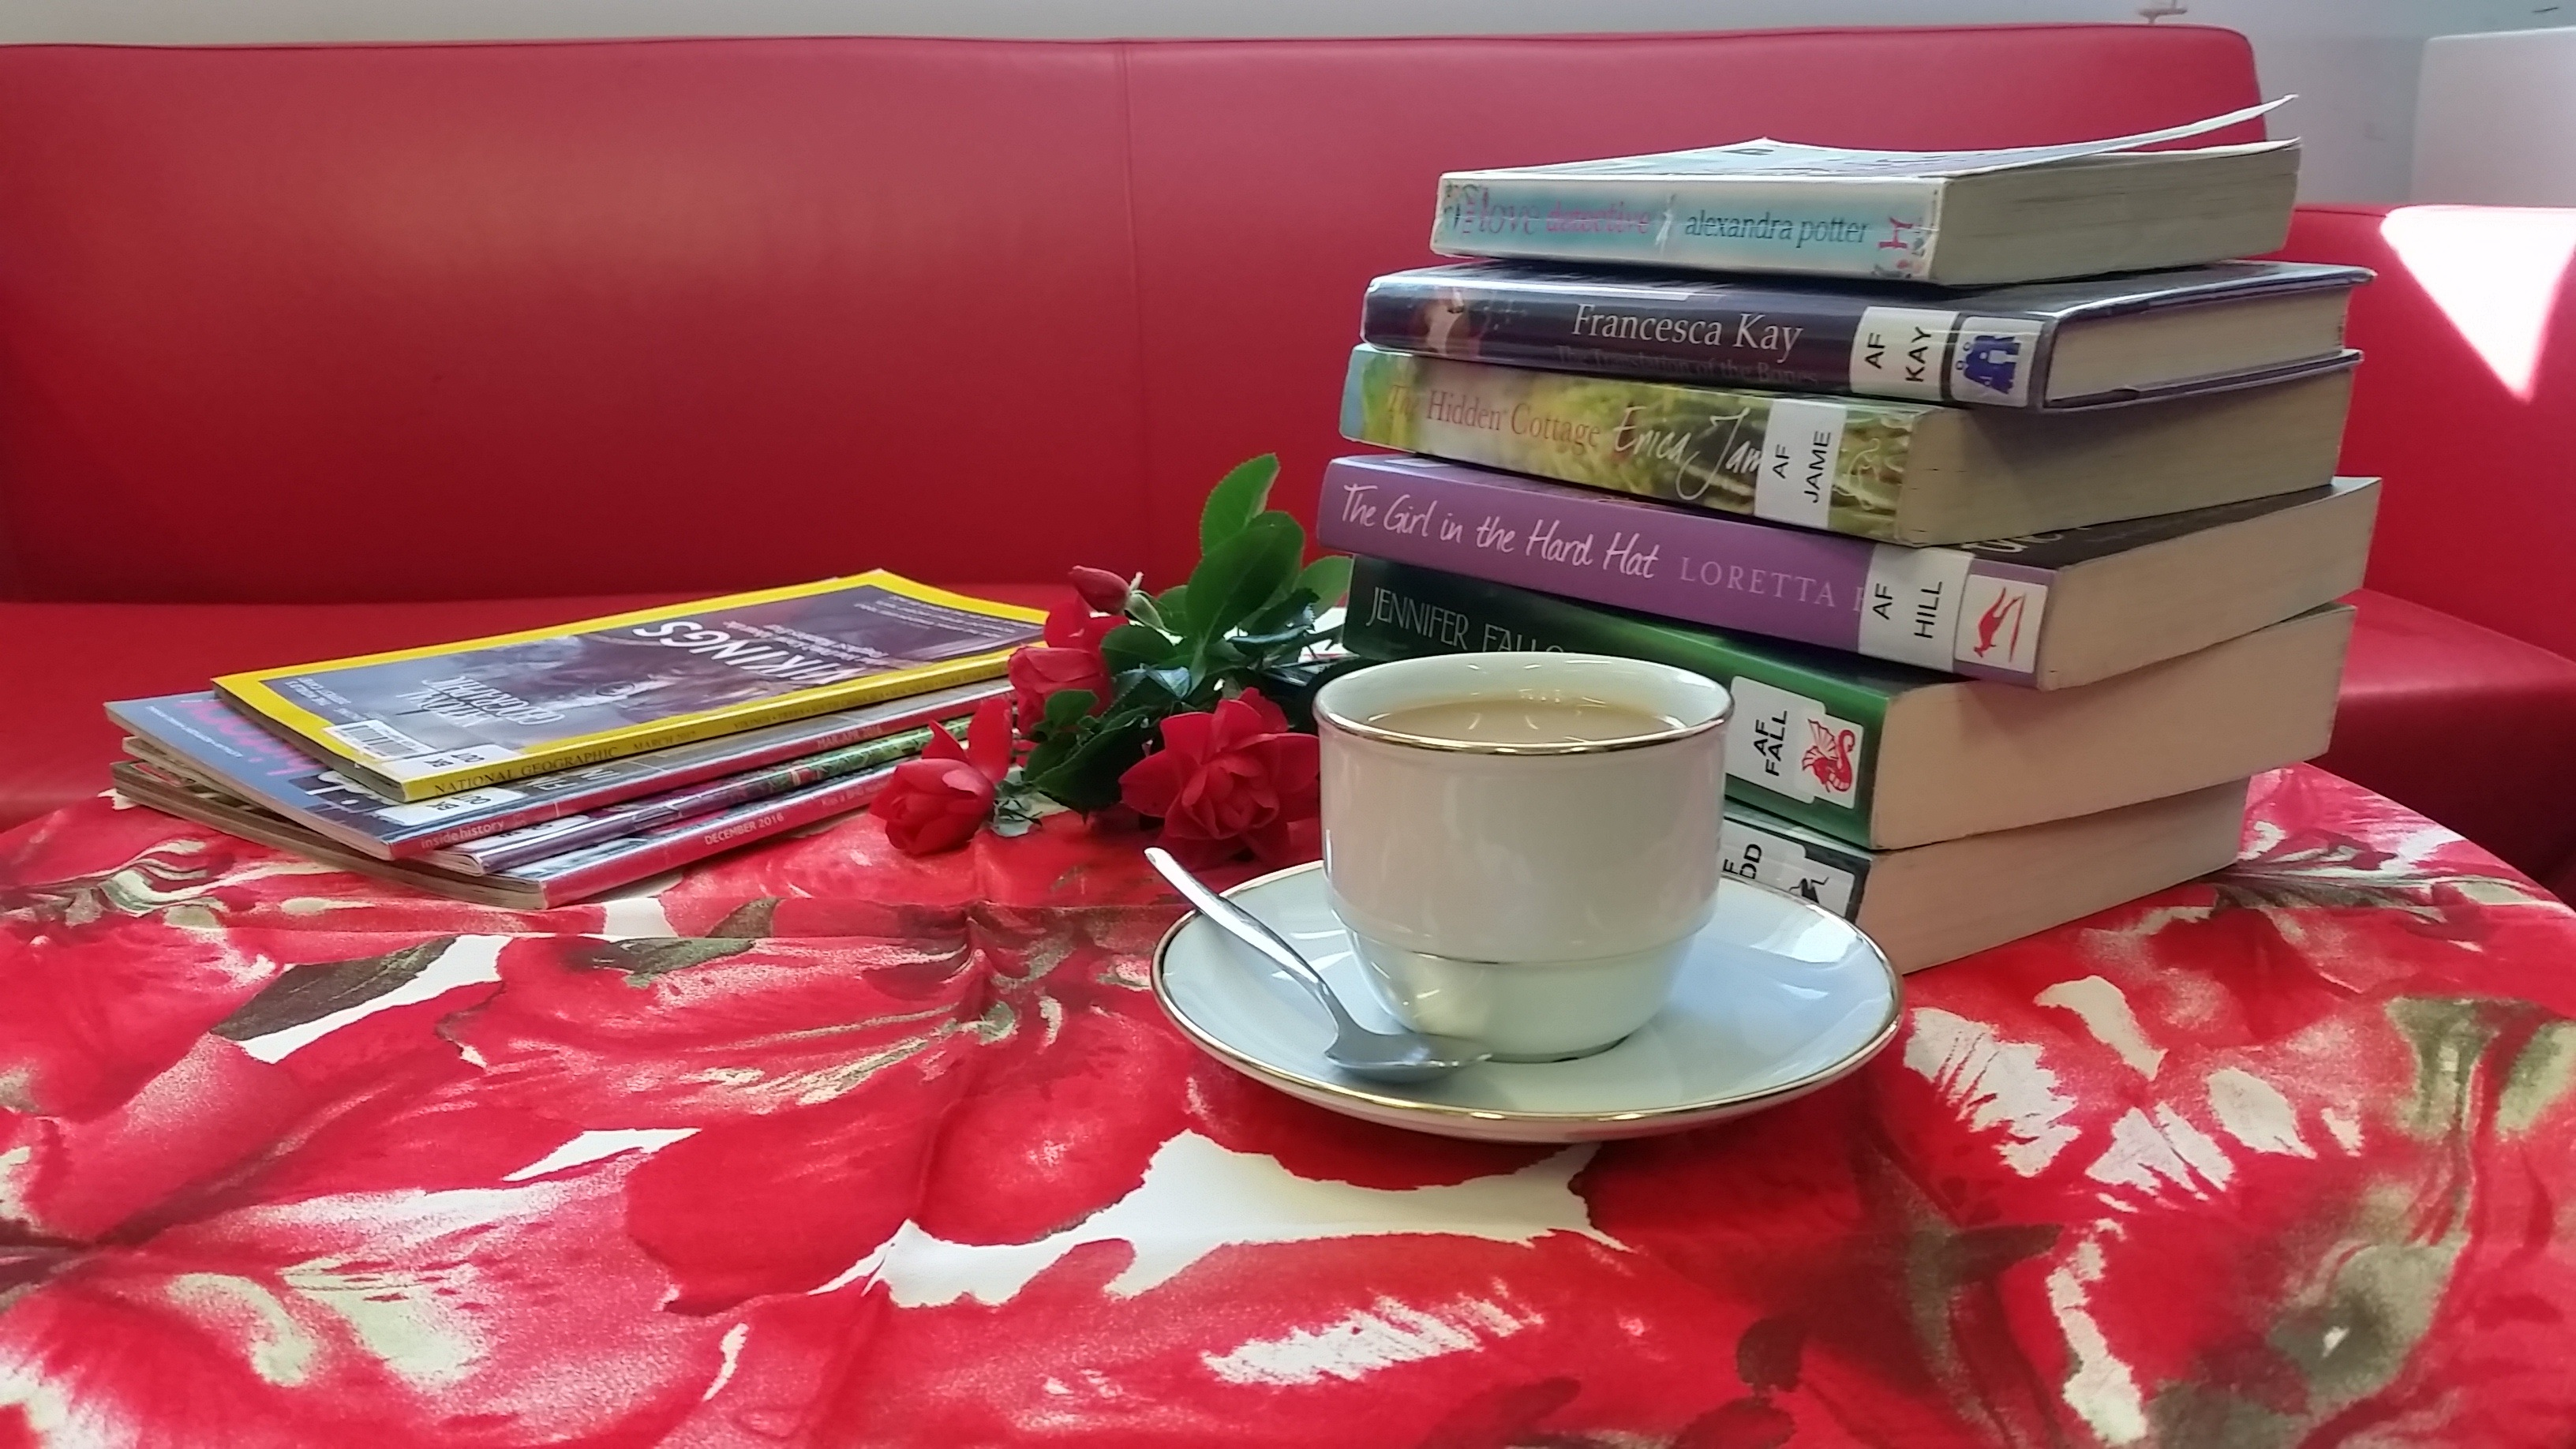 A cup of tea in front of library books